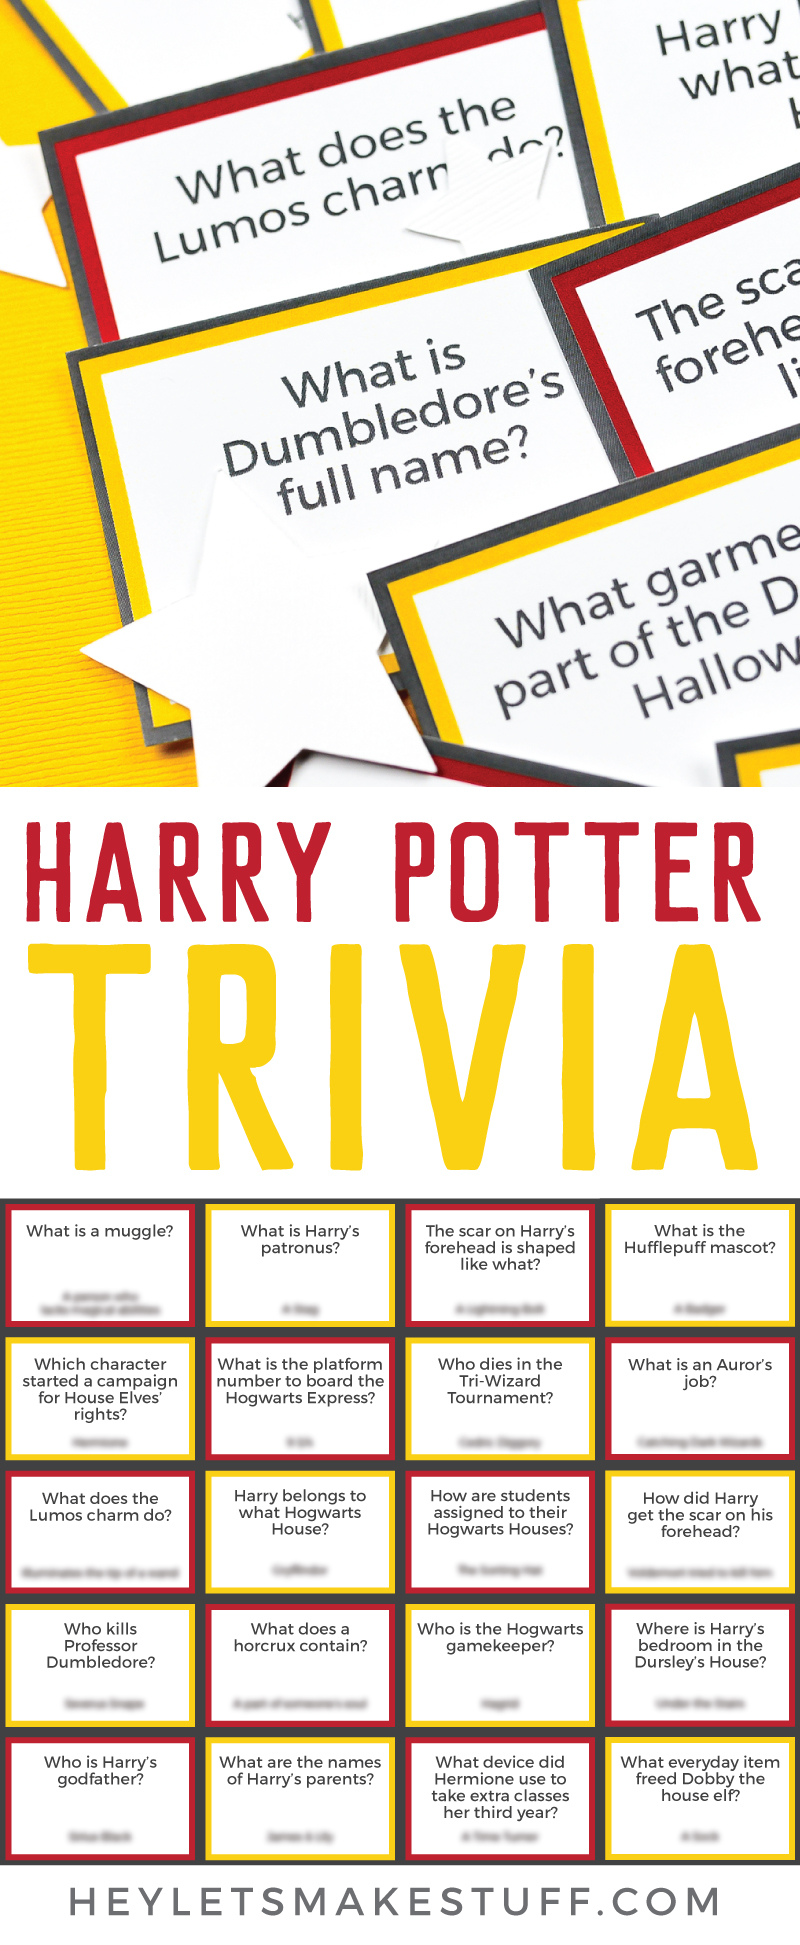 Test your smarts of everything Harry Potter—from characters to charms, Hogwarts to horcruxes—with this fun printable Harry Potter Trivia! Perfect for a Potterhead trivia night or party. Two versions—easy and hard, so every Potter fan can participate! via @heyletsmakestuf